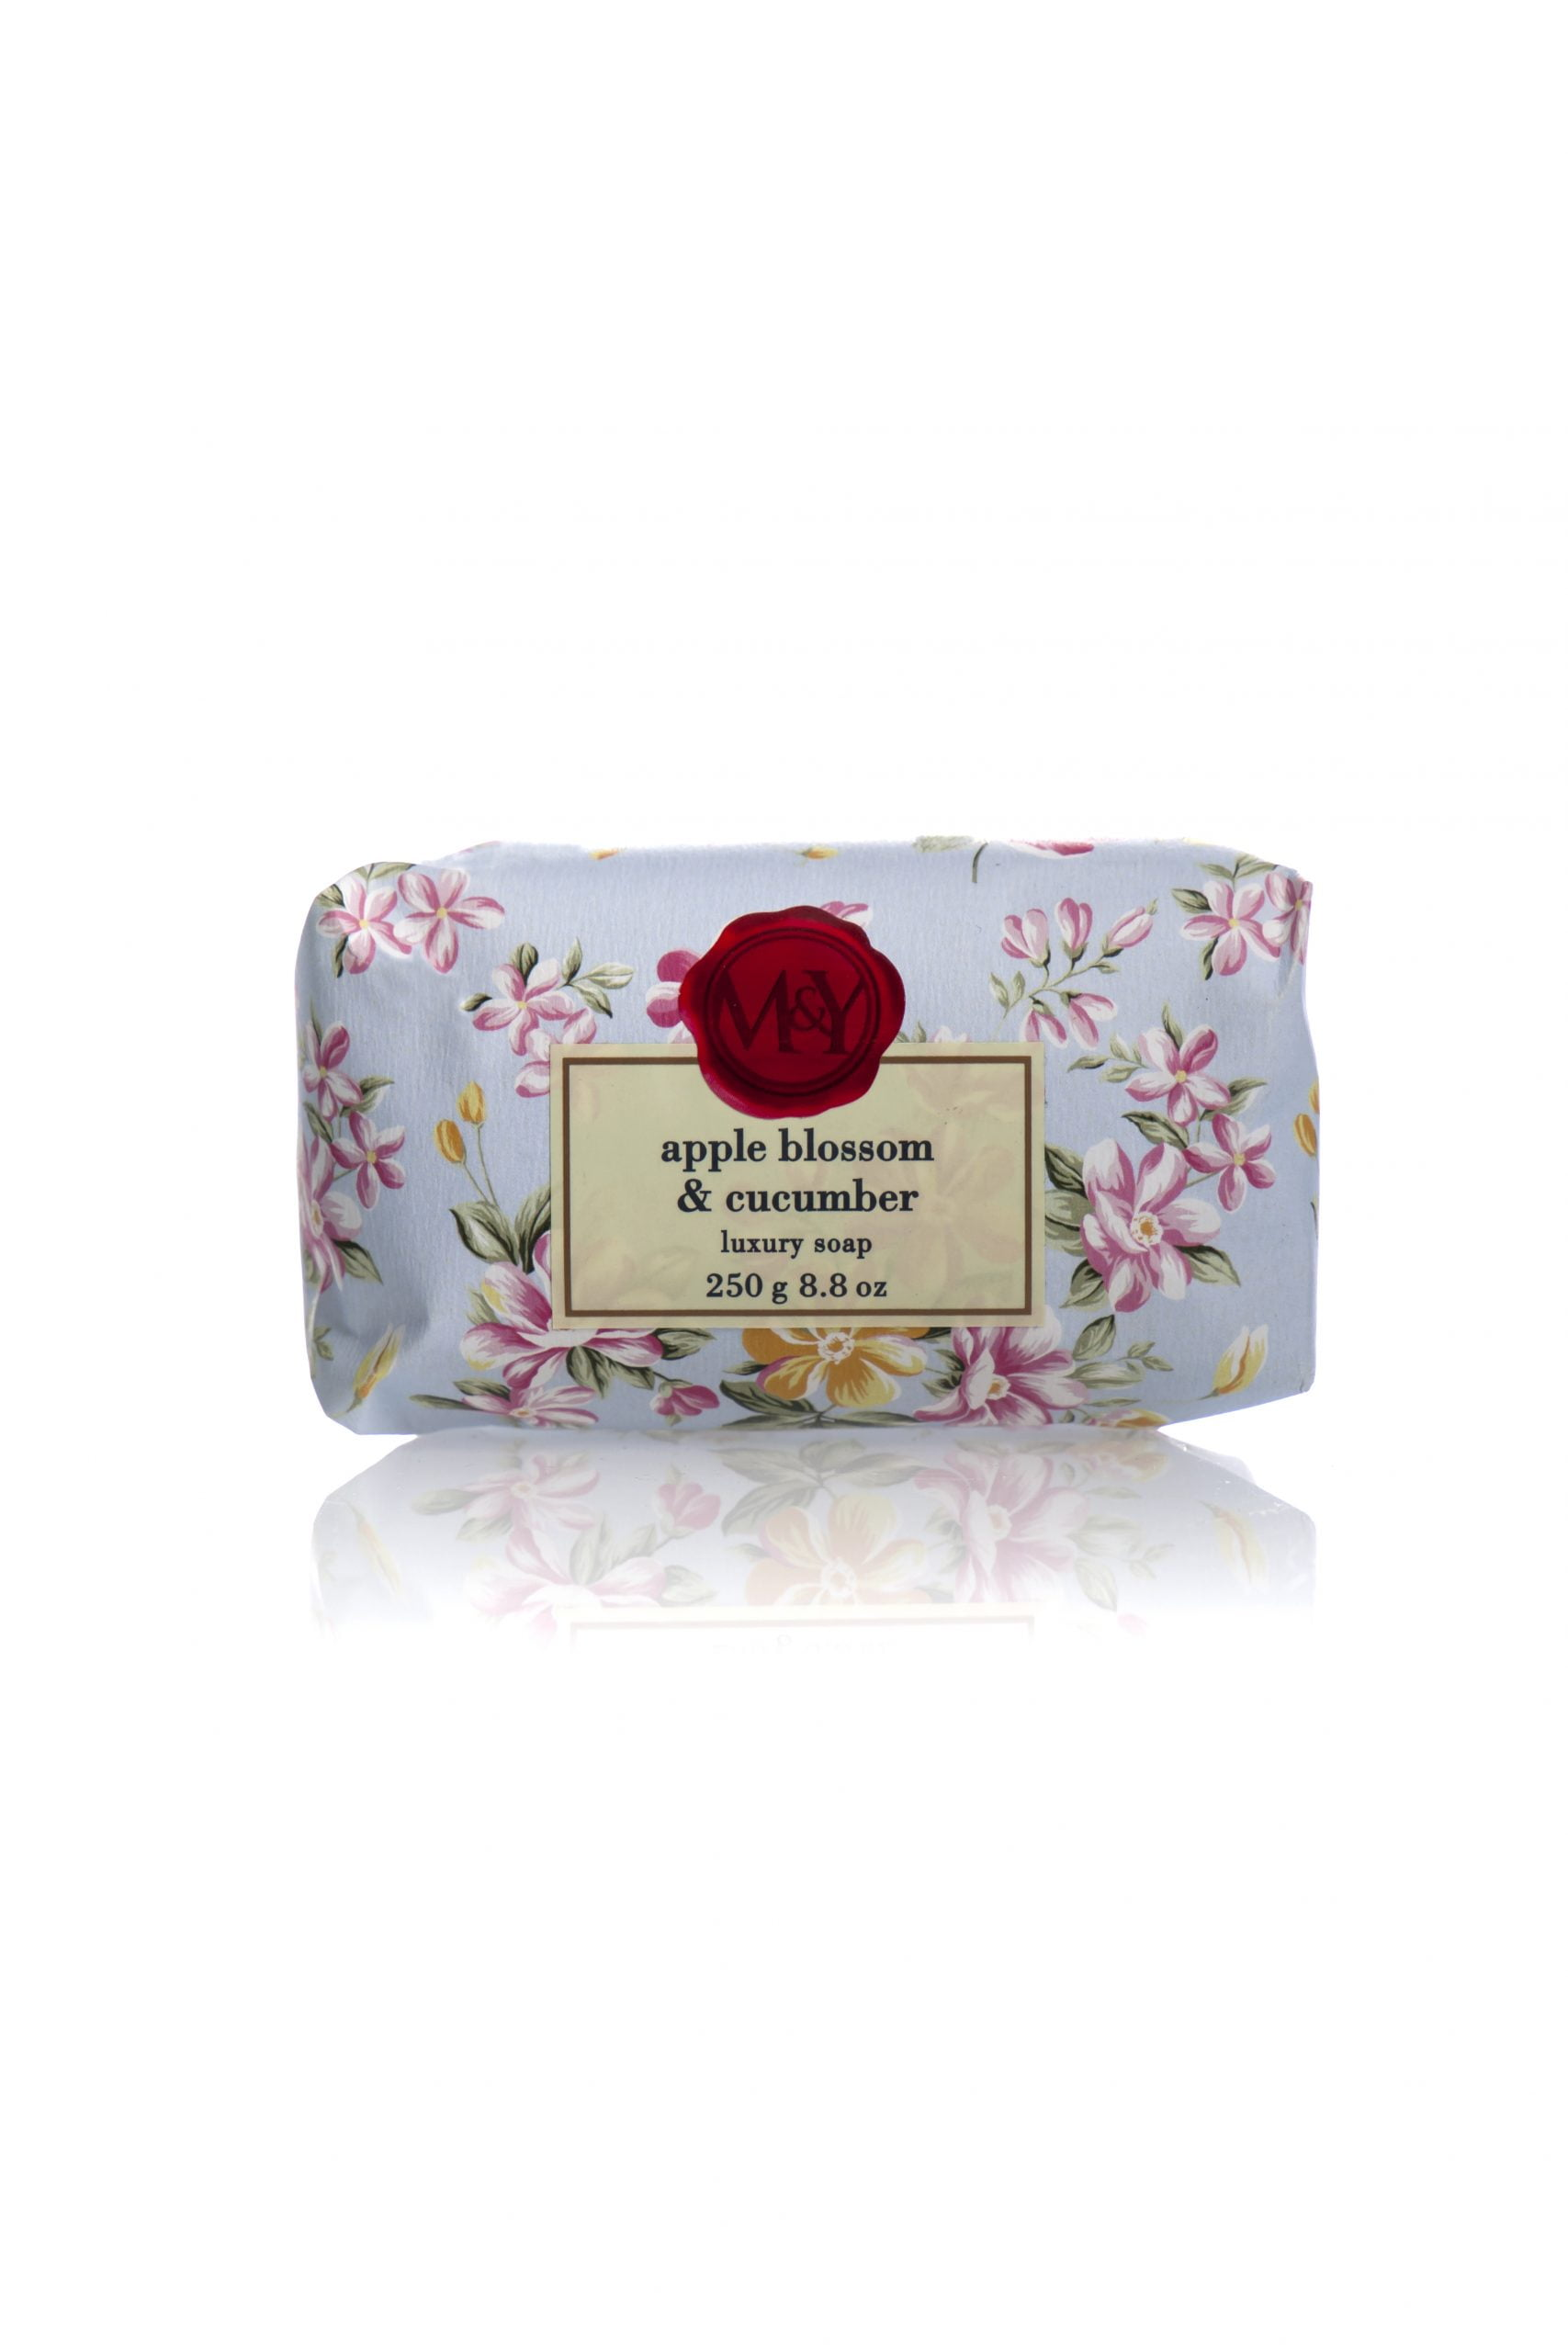 MY-Aqua-Blossom-Cucumber-250g-Luxury-Soap-scaled-1.jpg